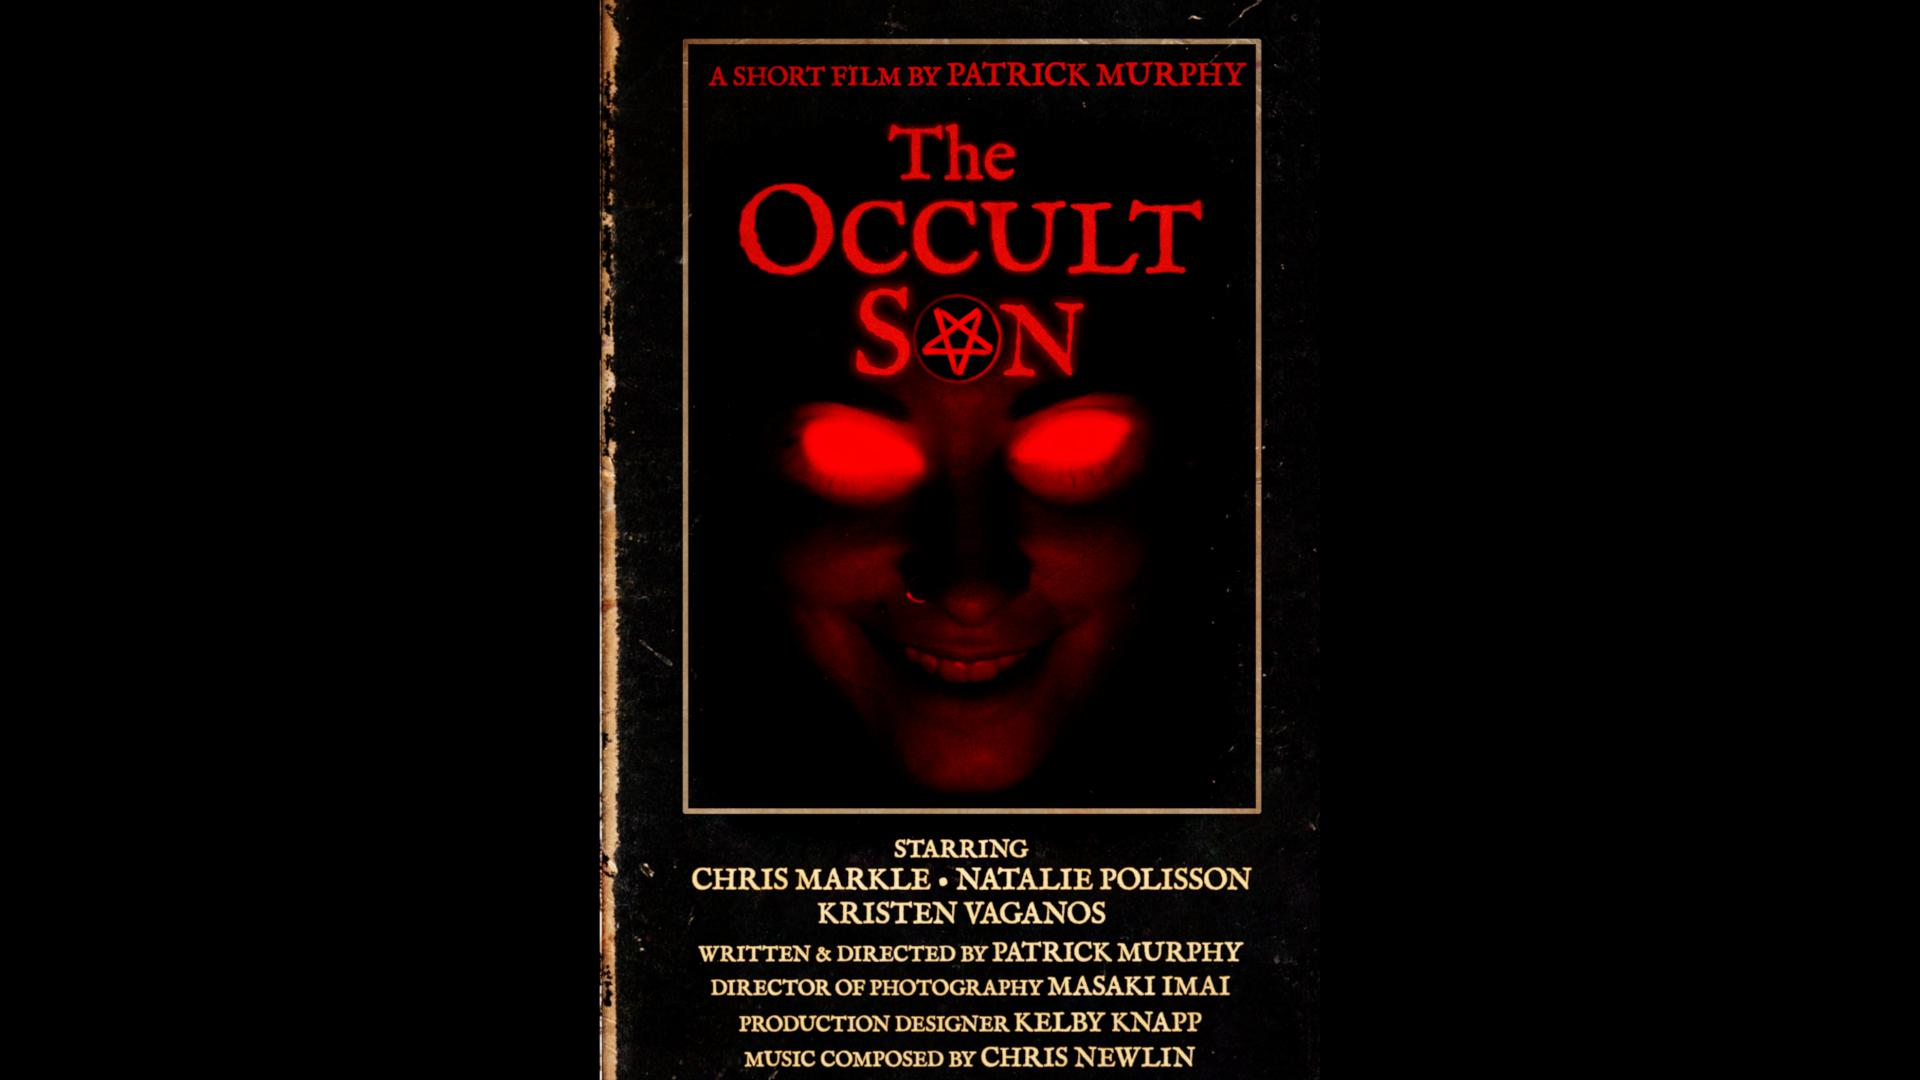 The Occult Son